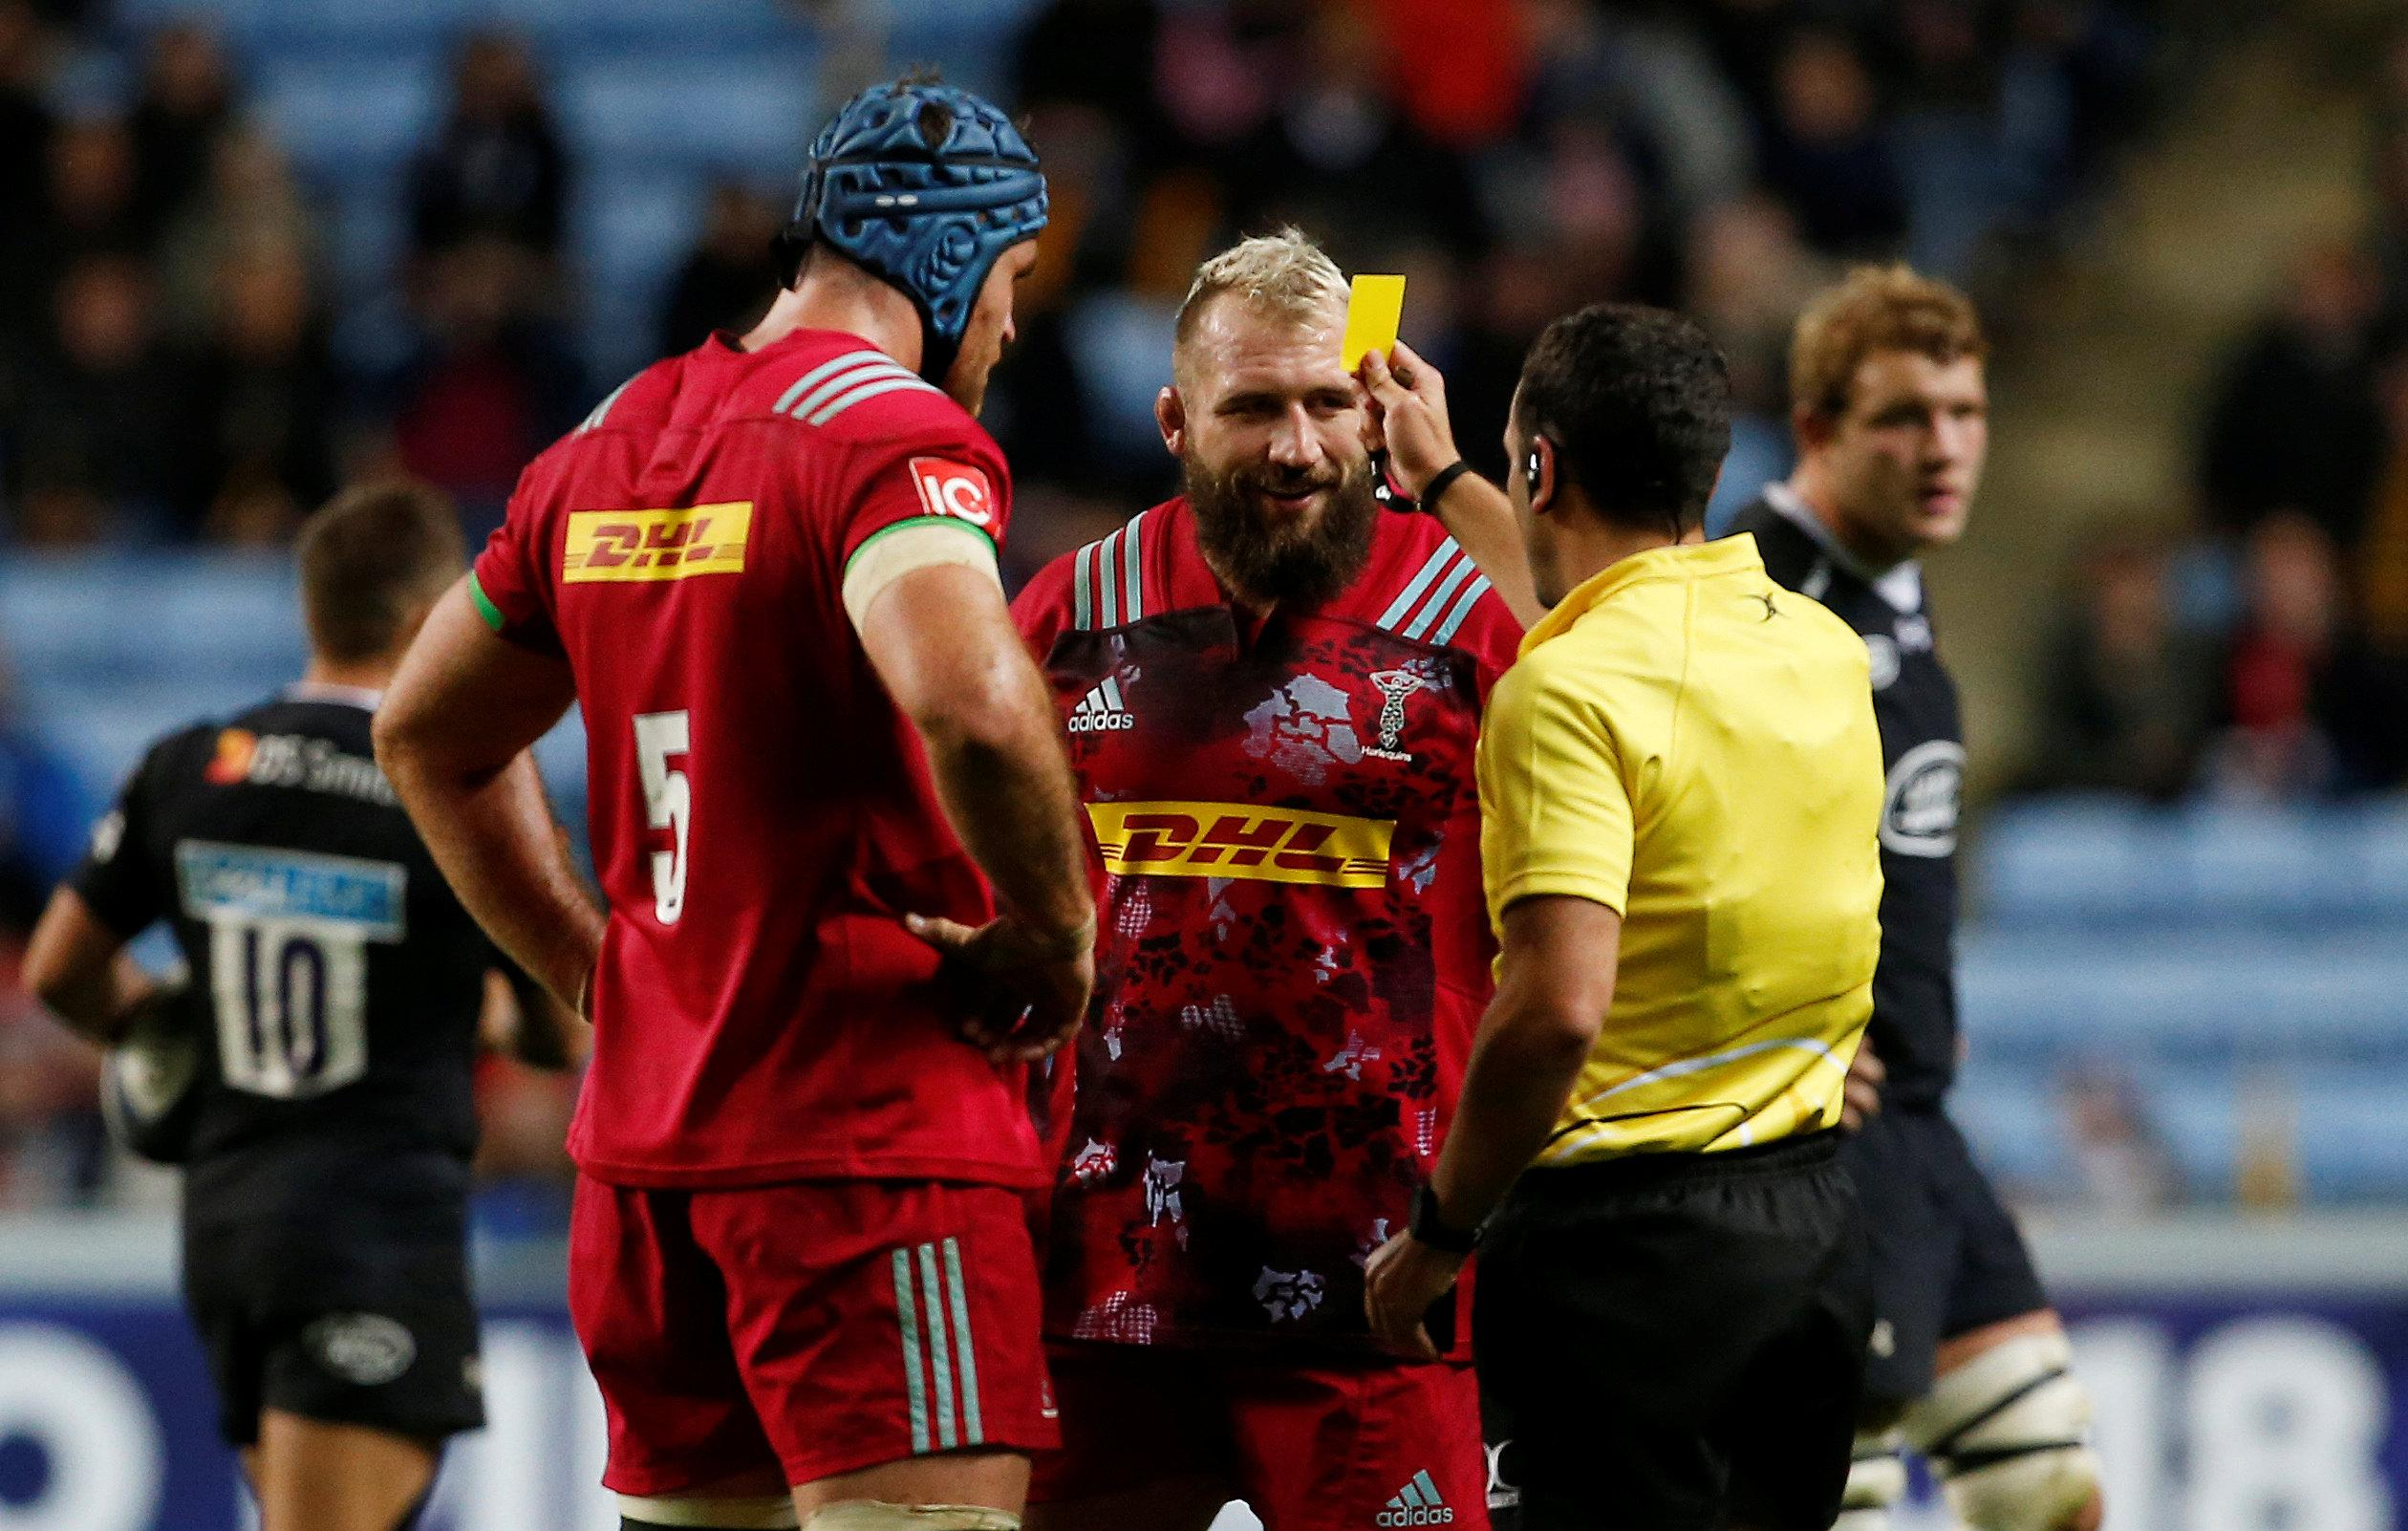 Marler revealed his tactic was to pick up red and yellow cards to avoid having to spend extended periods with England away from his family